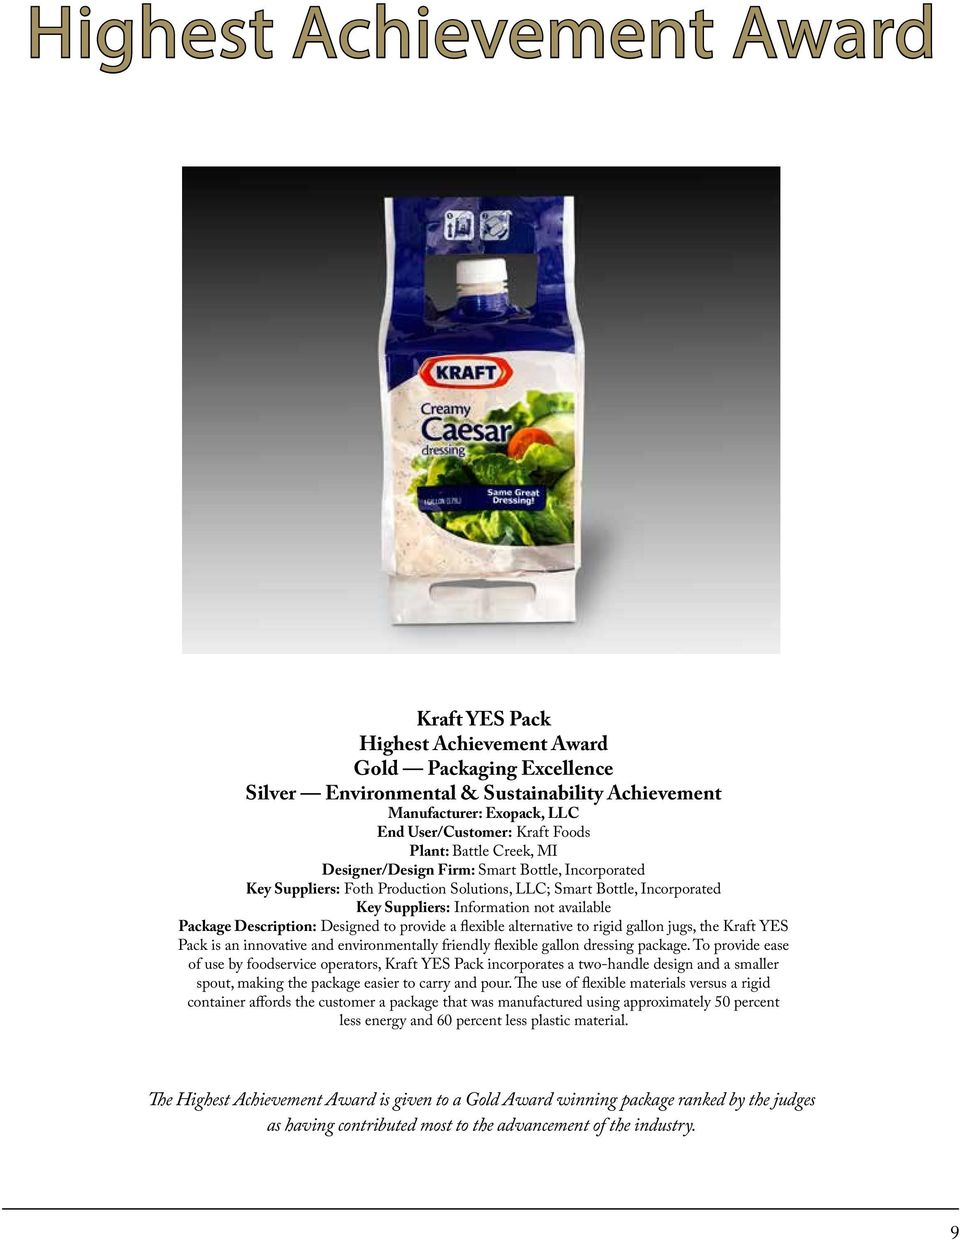 flexible alternative to rigid gallon jugs, the Kraft YES Pack is an innovative and environmentally friendly flexible gallon dressing package.